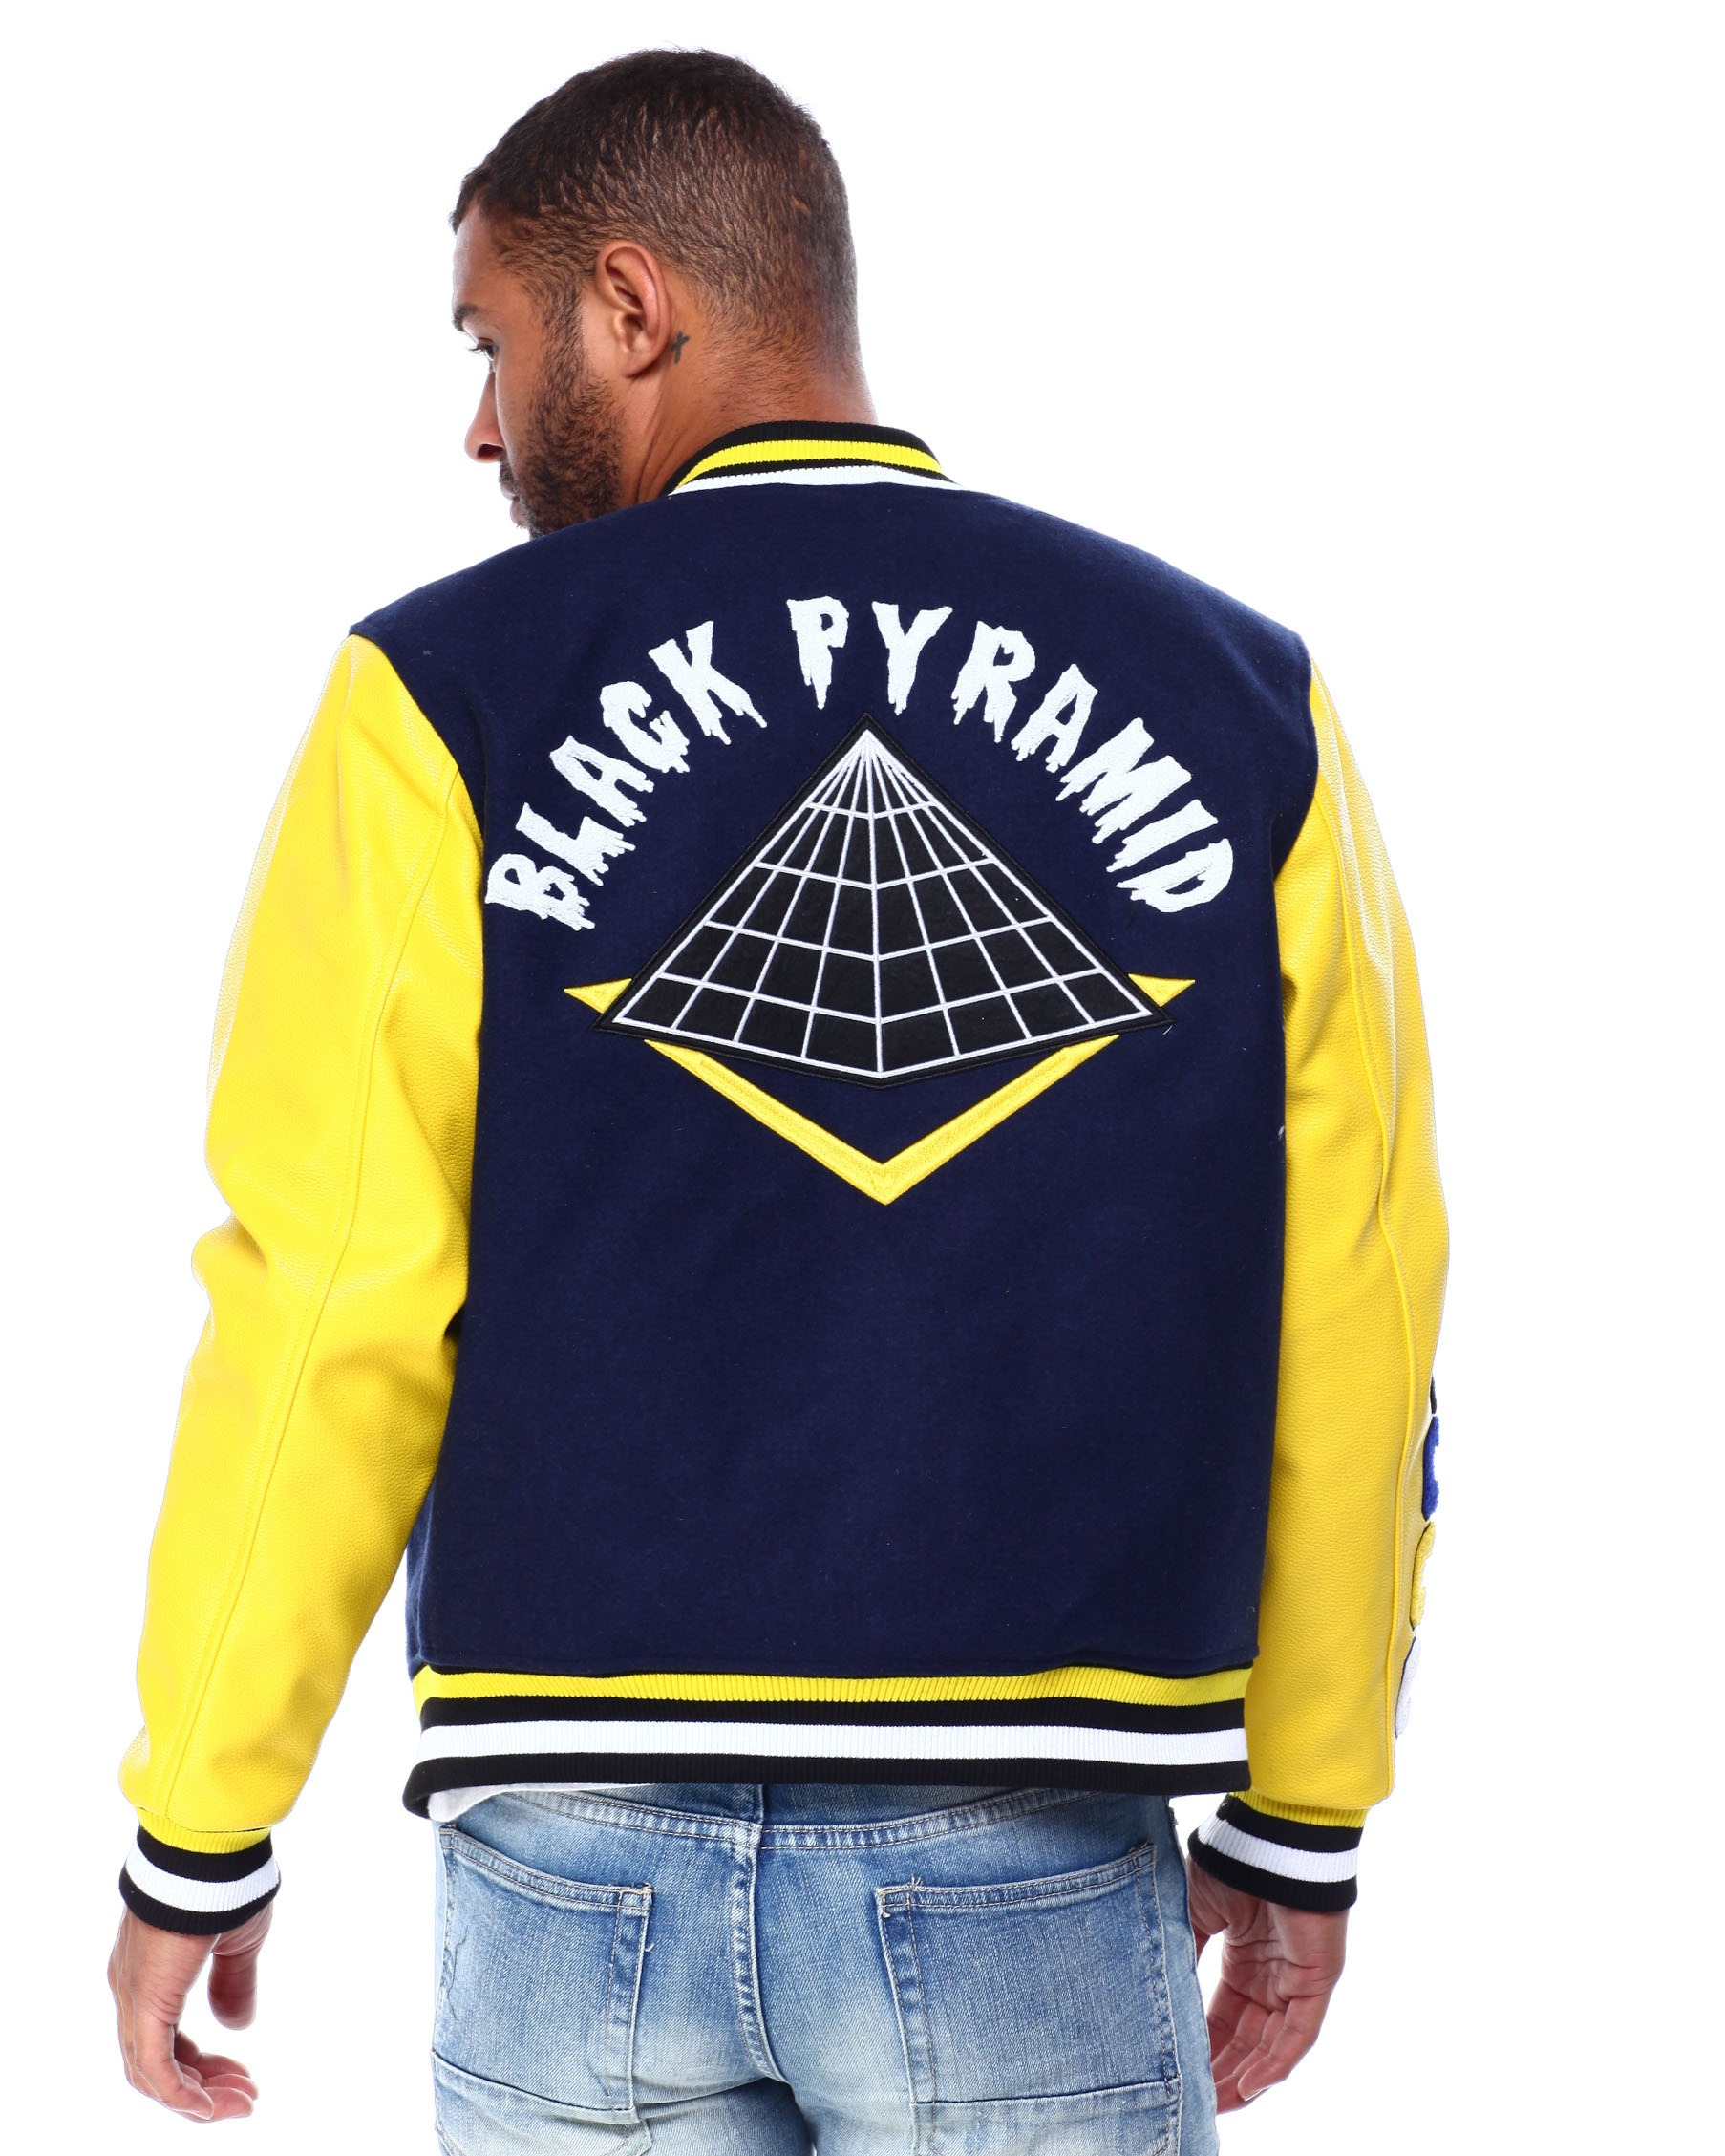 Buy Core Logo Varsity Jacket Men S Outerwear From Black Pyramid Find Black Pyramid Fashion